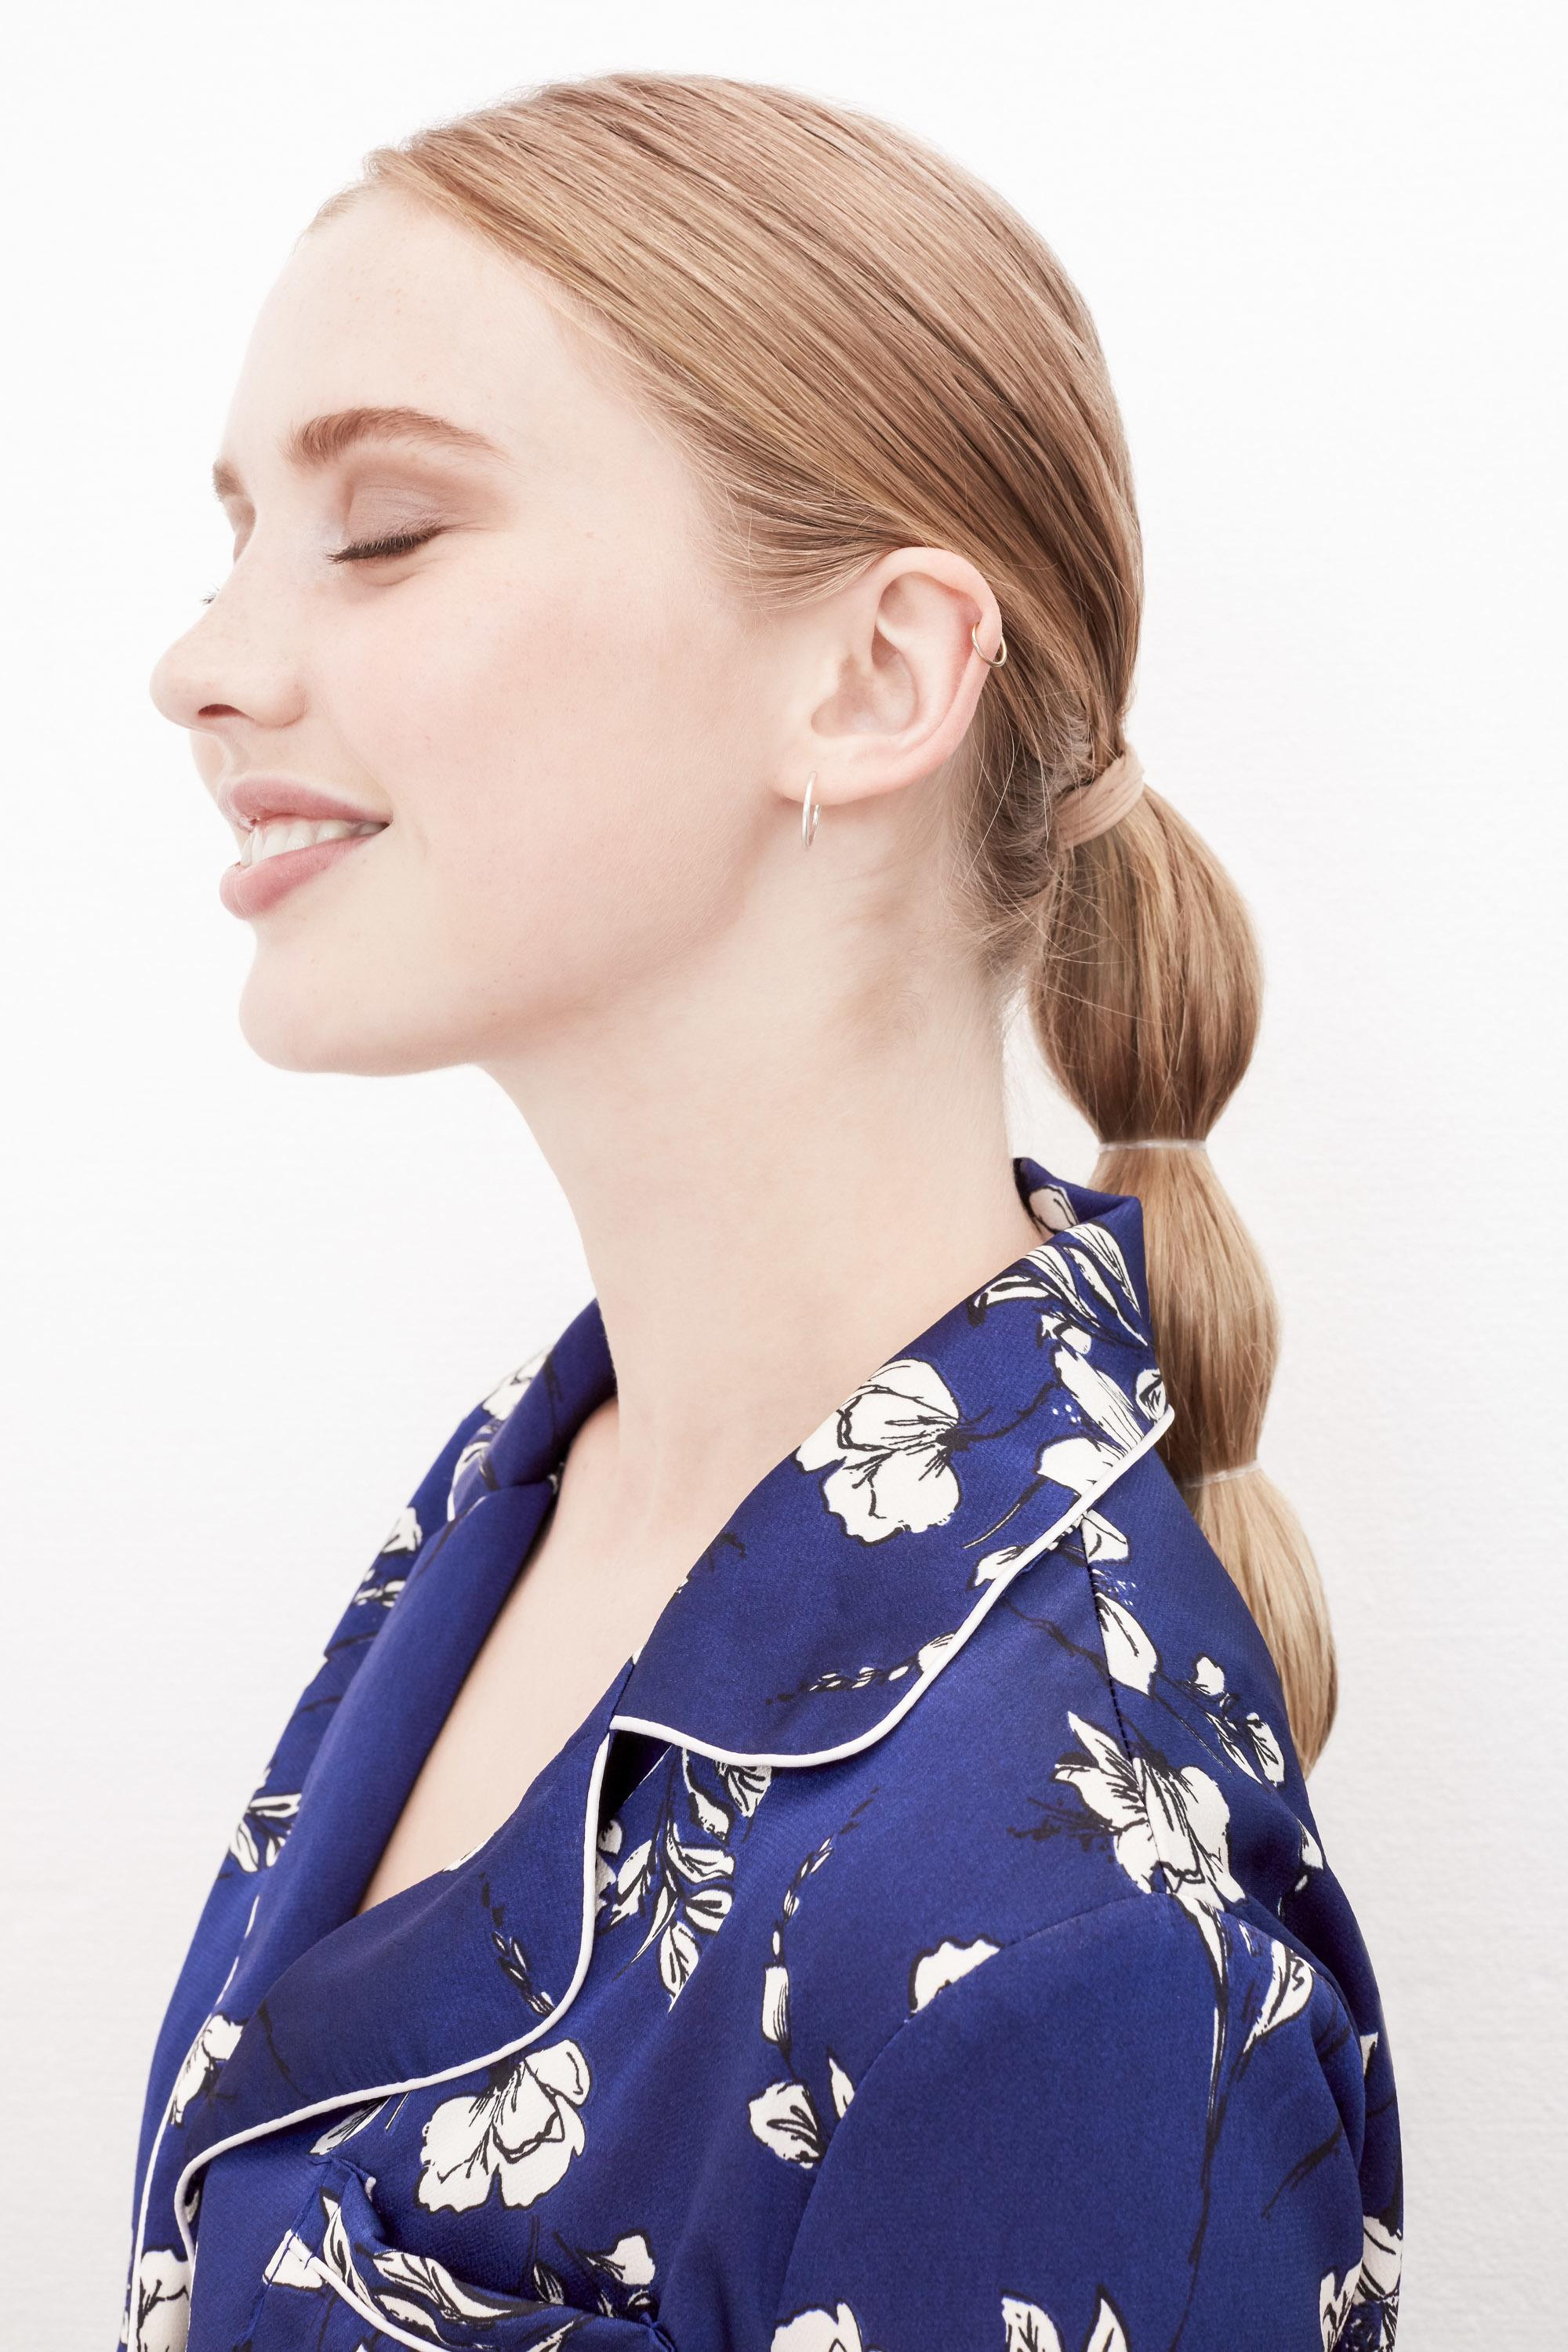 Easy braids for long hair: Side profile of a woman with long dark honey blonde hair in a bubble ponytail hairstyle, wearing a blue floral top